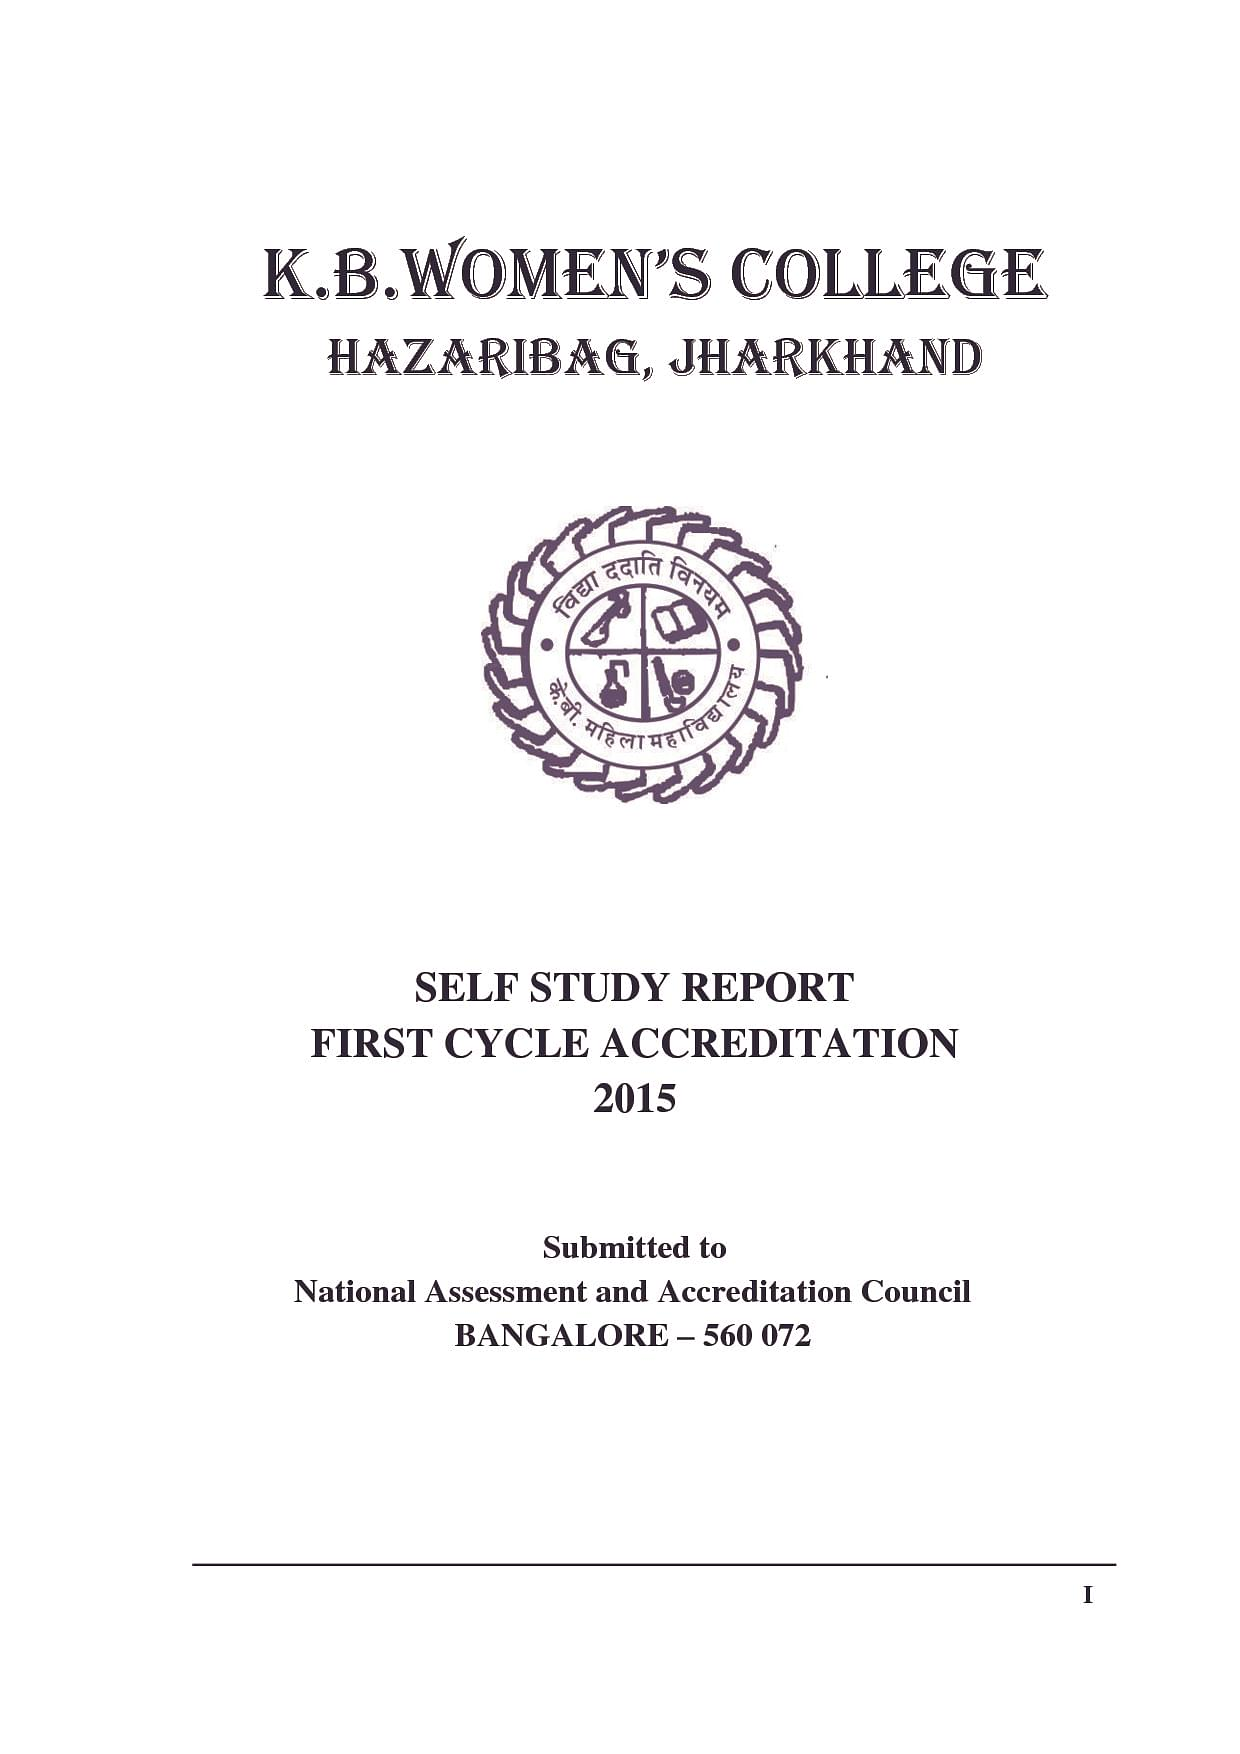 Kb womens college hazaribagh admissions contact website 2017self study report thecheapjerseys Image collections